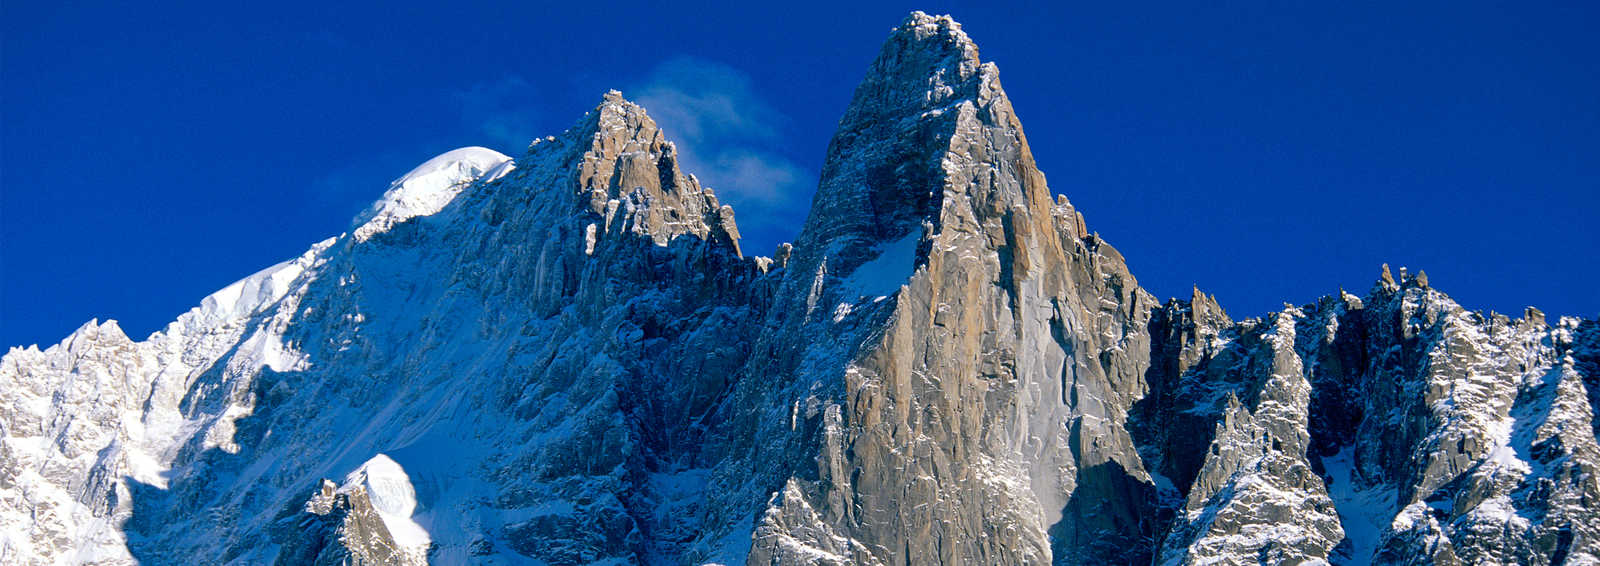 Aguille Verte and Le Drus above Chamonix